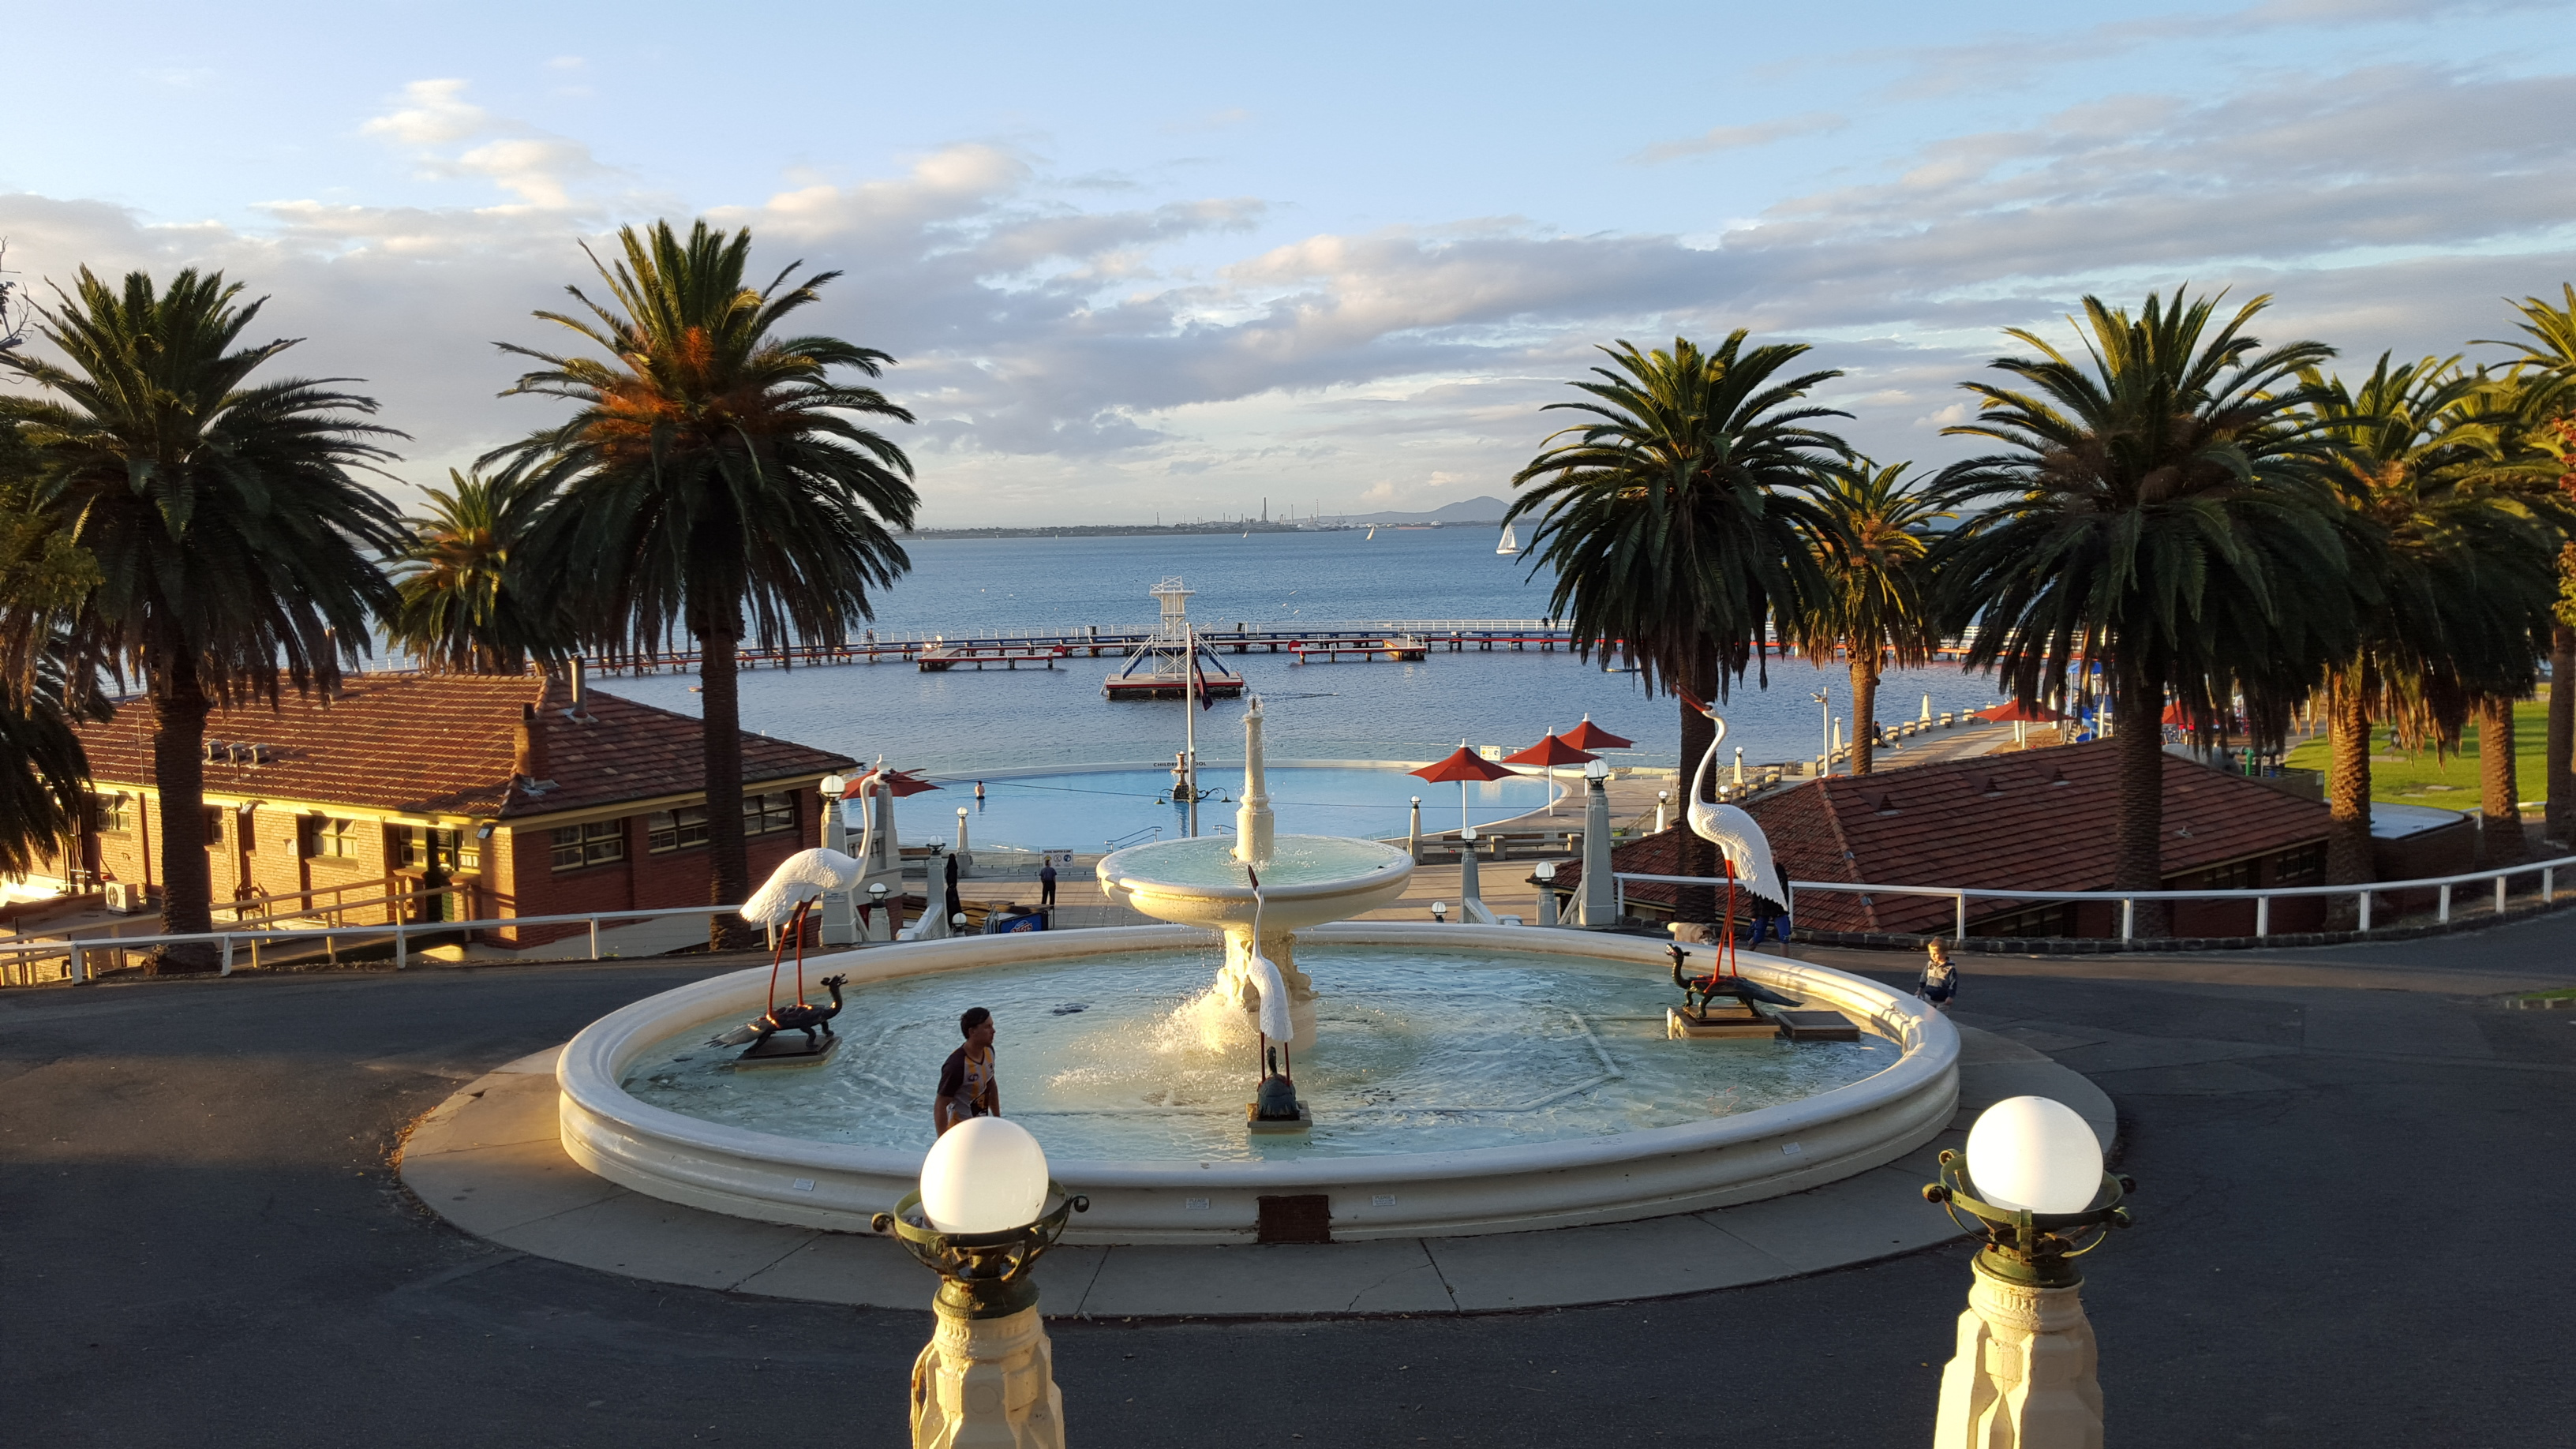 Geelong Waterfront Geelong By Cassandrajoy